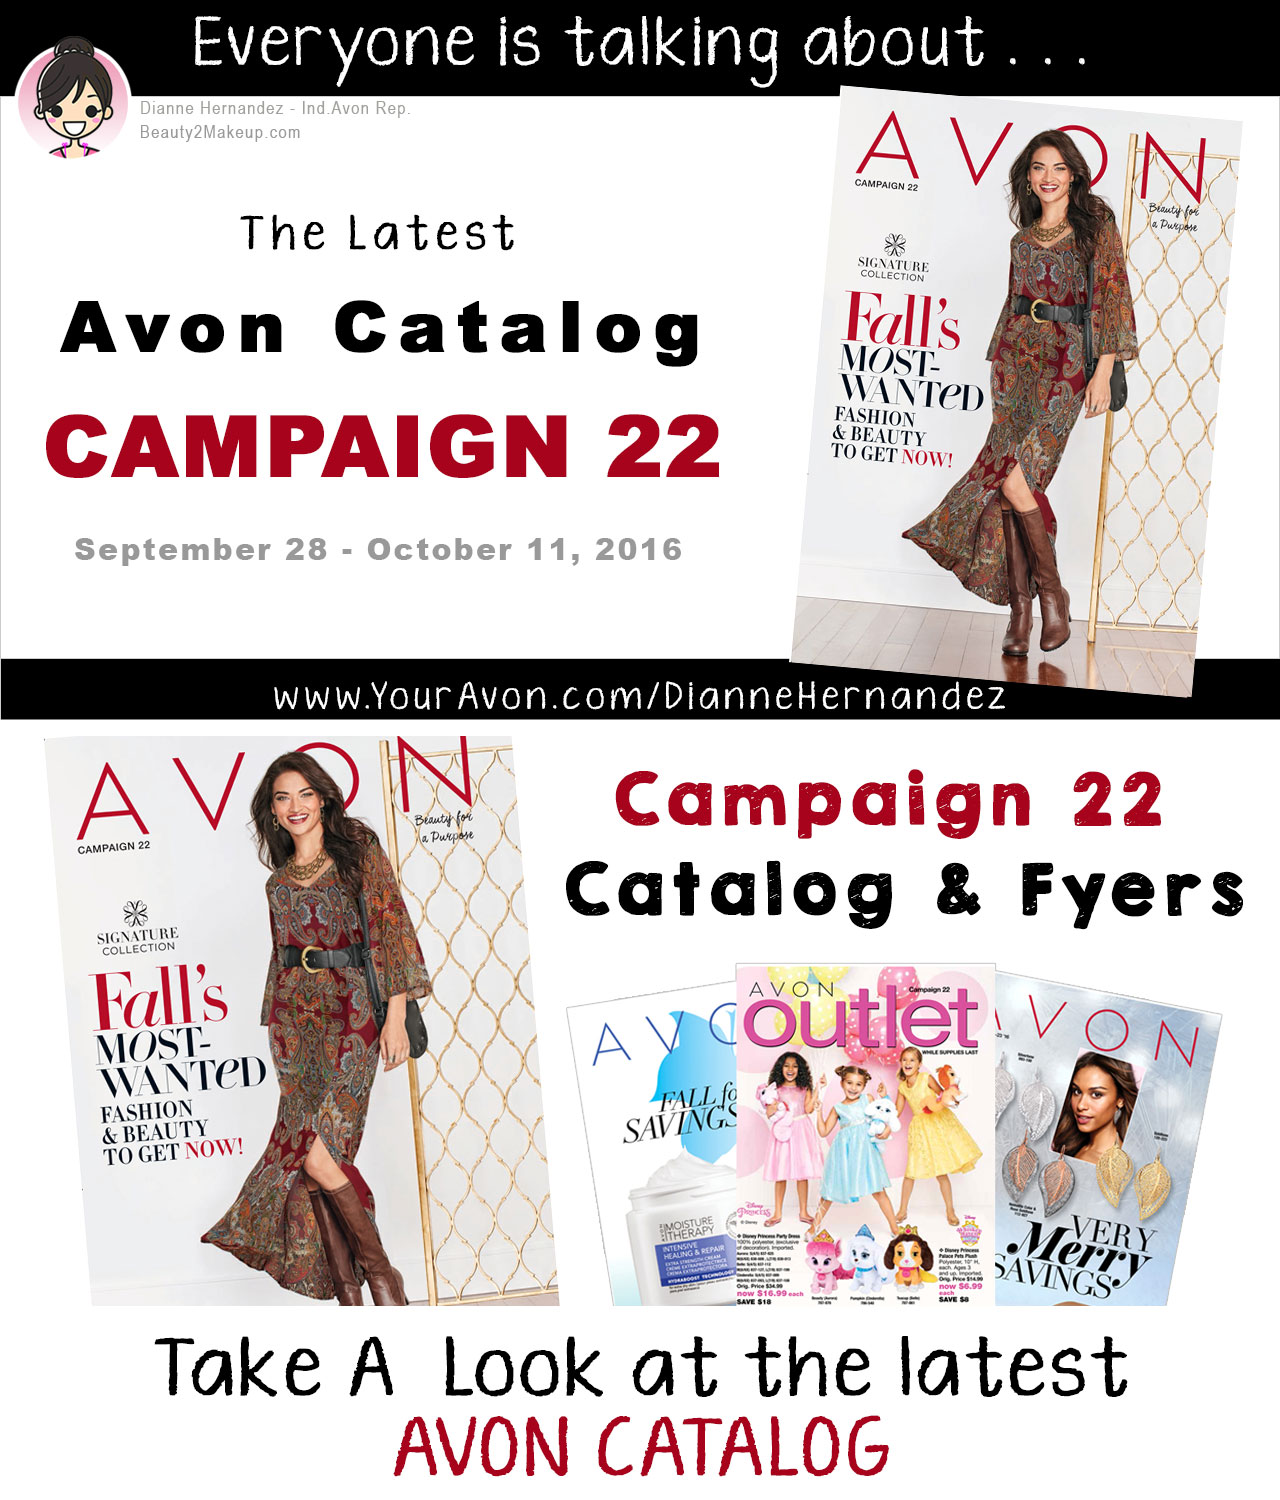 Avon Catalog Campaign 22 October 2016 - In the Avon Campaign 22 catalog Avon adds new merchandise to the Pink Ribbon Shop. October is Breast Cancer Awareness Month and Avon Pink Ribbon products are a great way to spread the word. With every Pink Ribbon purchase a percentage of the net profits will go toward Avon's Breast Cancer Crusade!